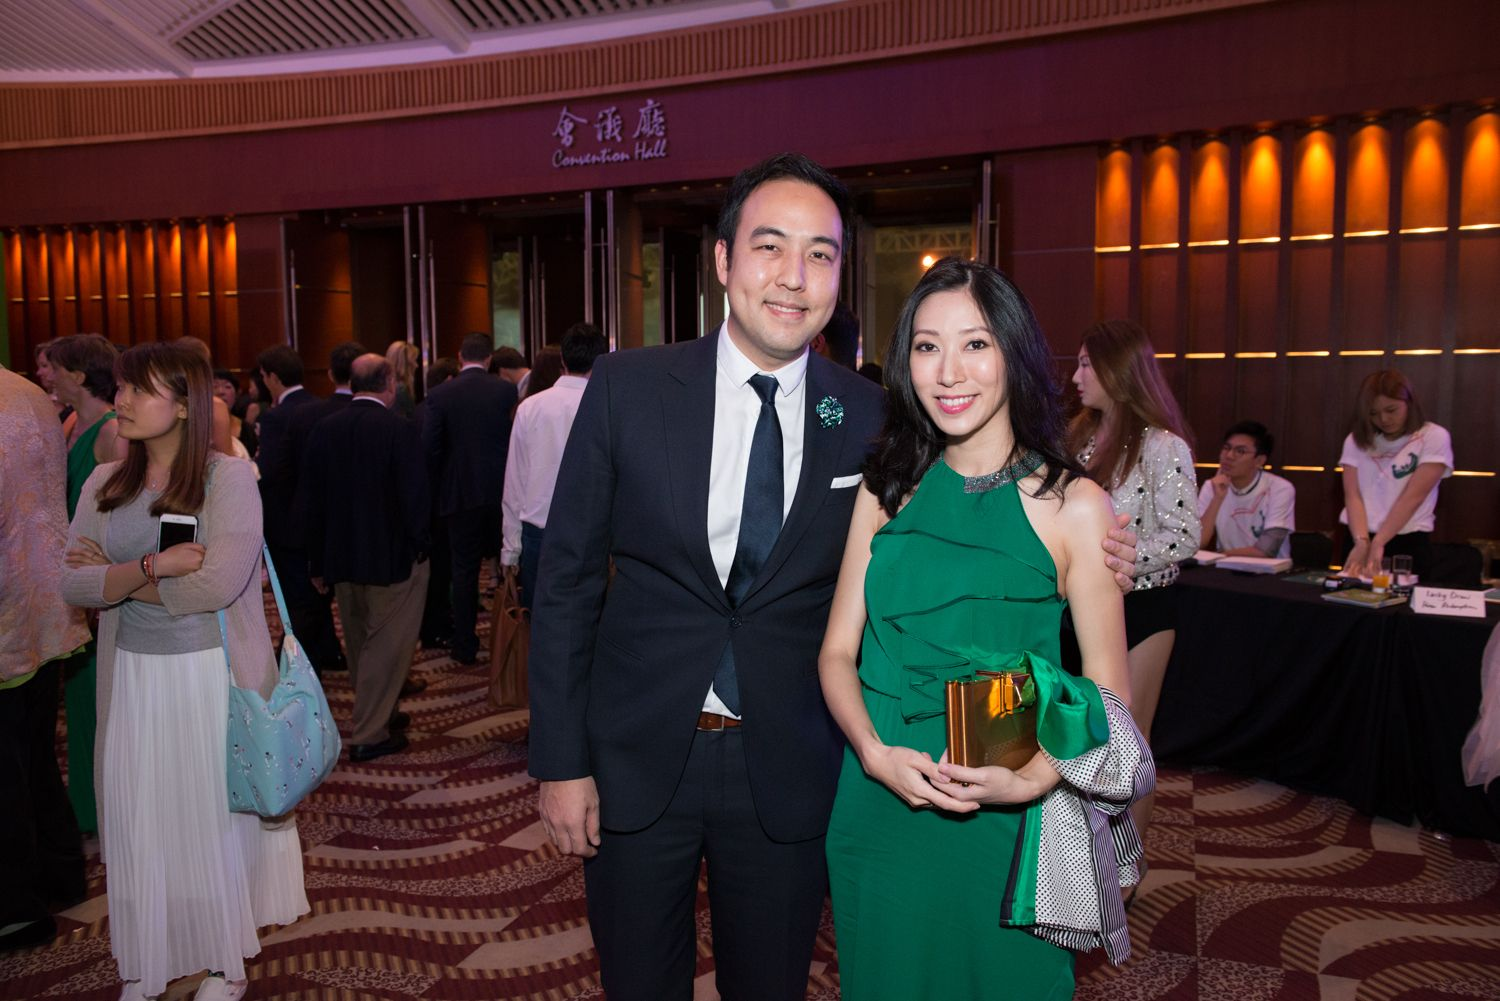 Leonard Chao and Candice Chan-Chao